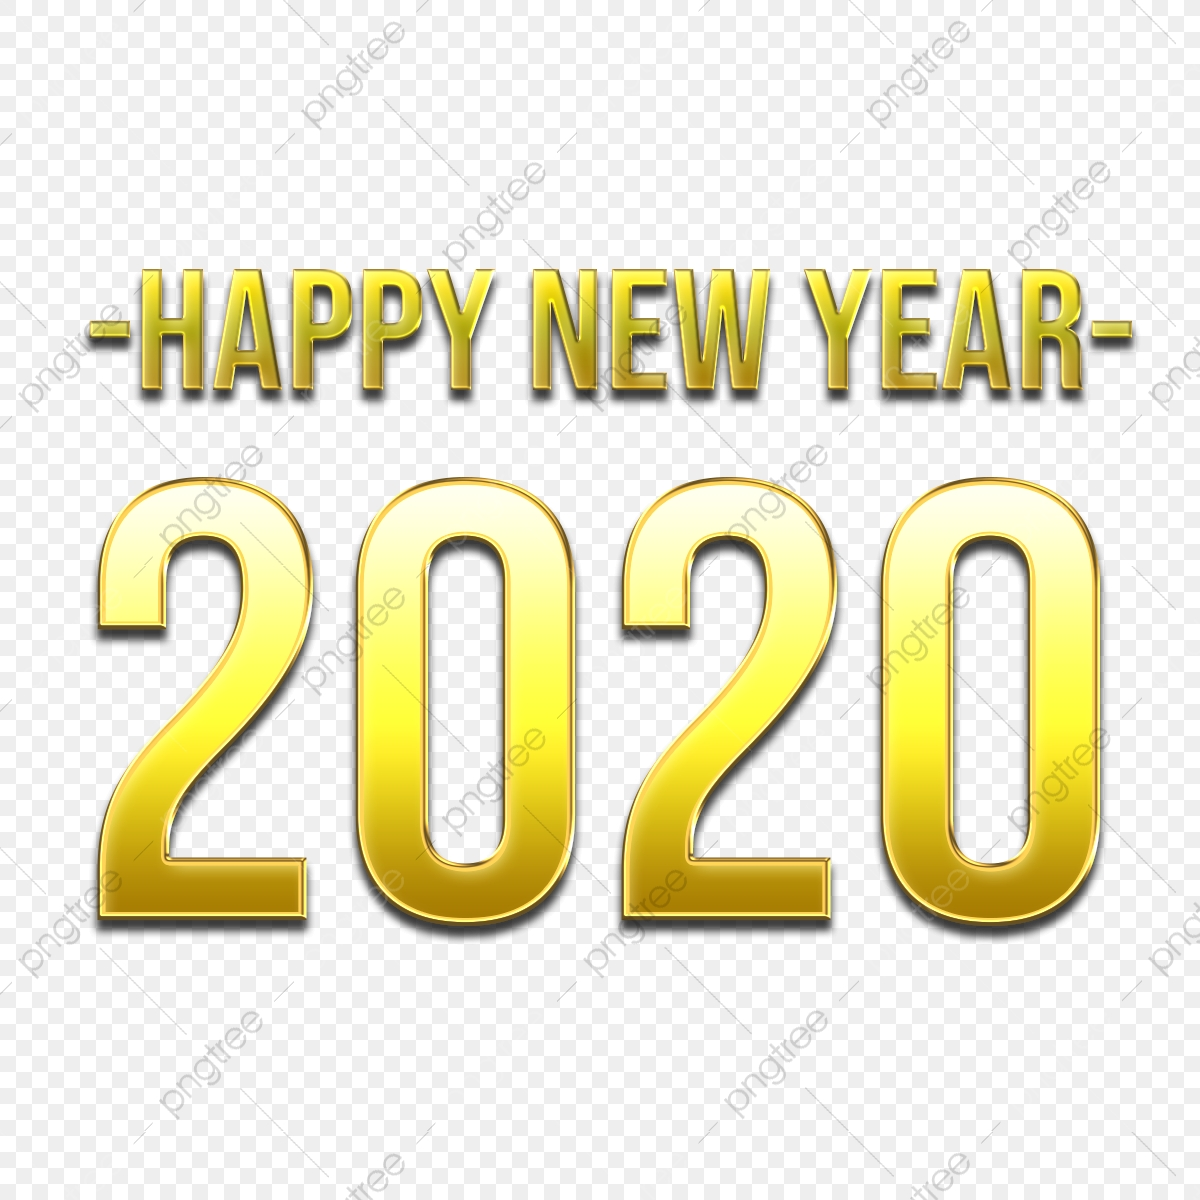 Happy New Year 2020 In Luxurious Golden Style Elegant Text